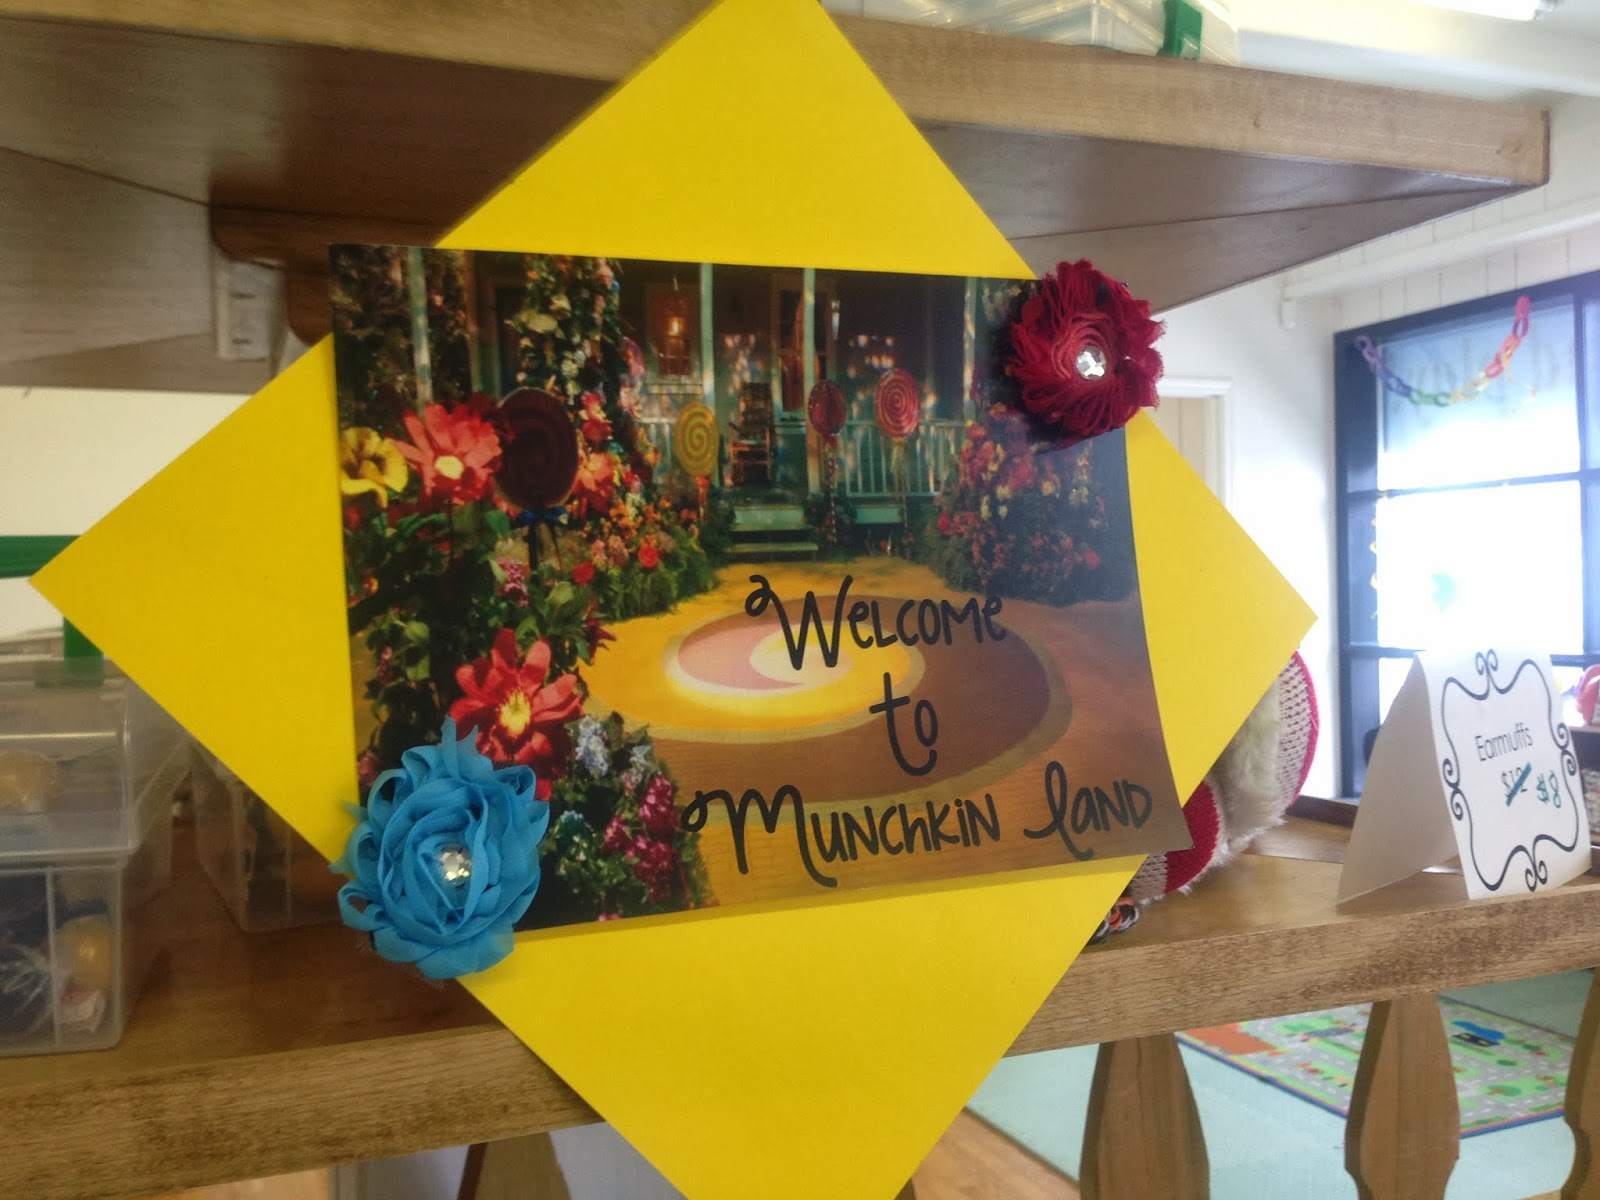 Wizard Of Oz Party Decorations Teaching Munchkins A Wizard Of Oz Celebration For My Little Munchkin